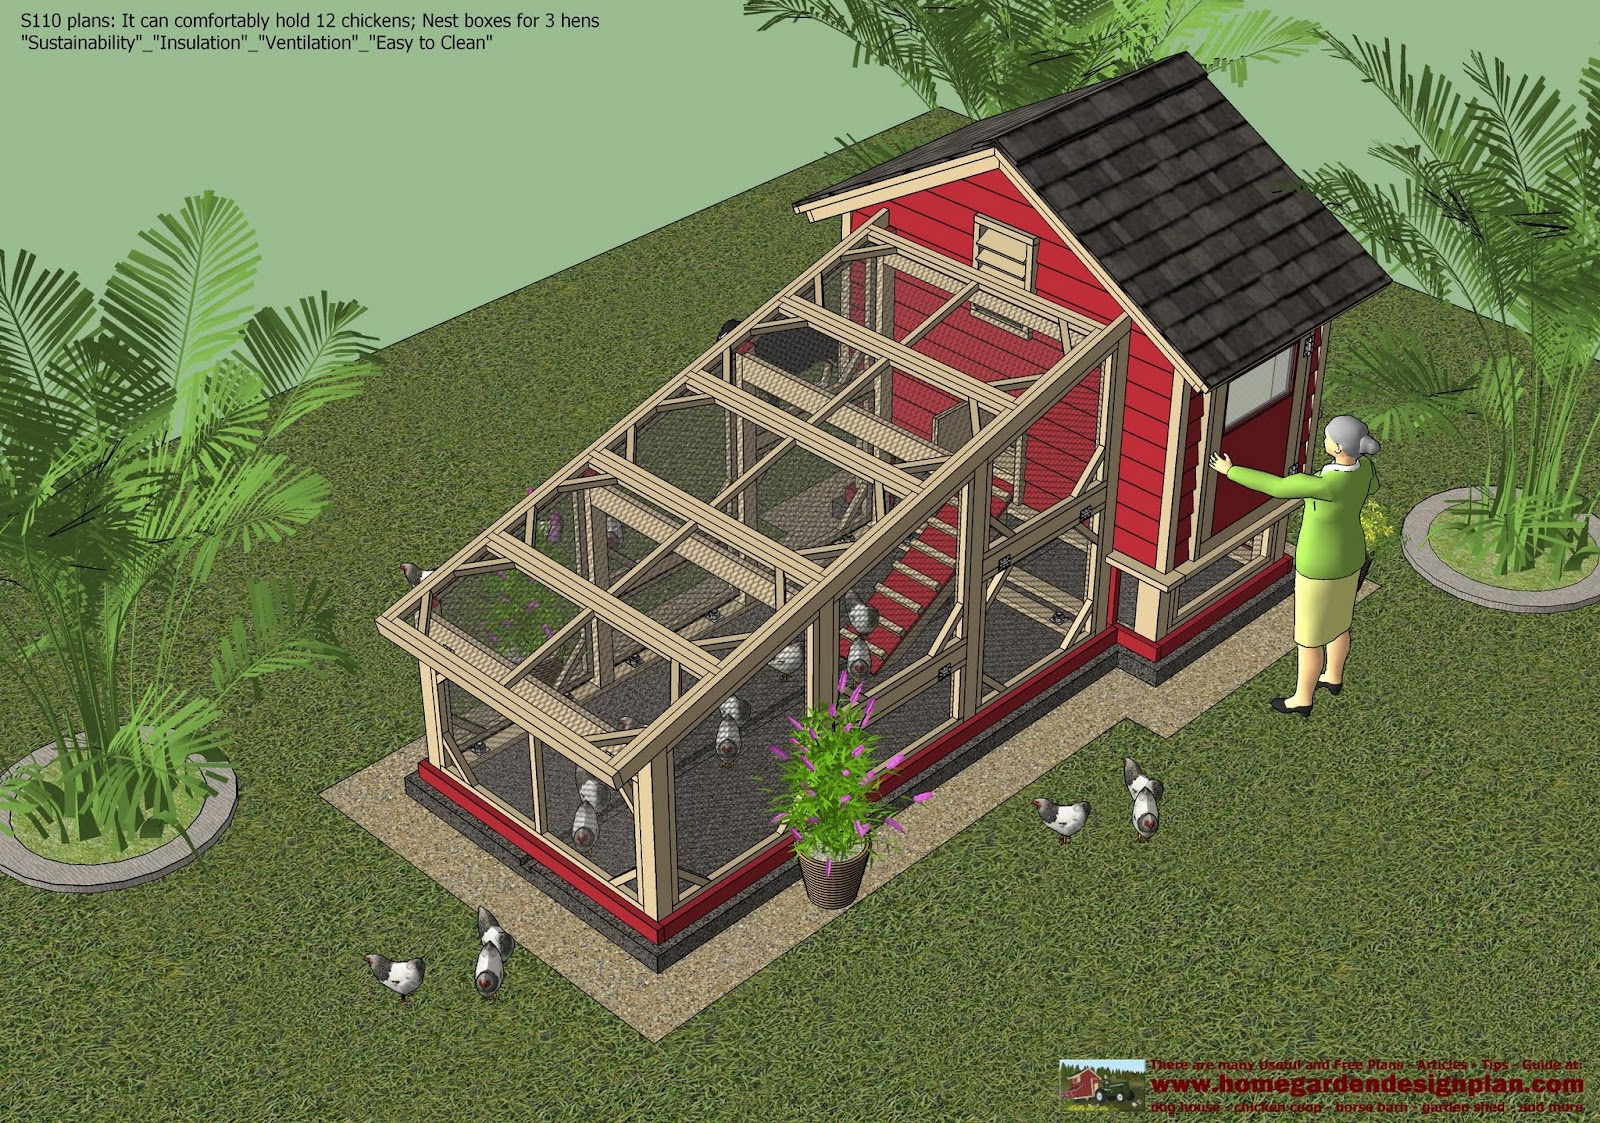 Knowing chicken coop plans for 6 8 chickens hen ternak for How to build a chicken hutch